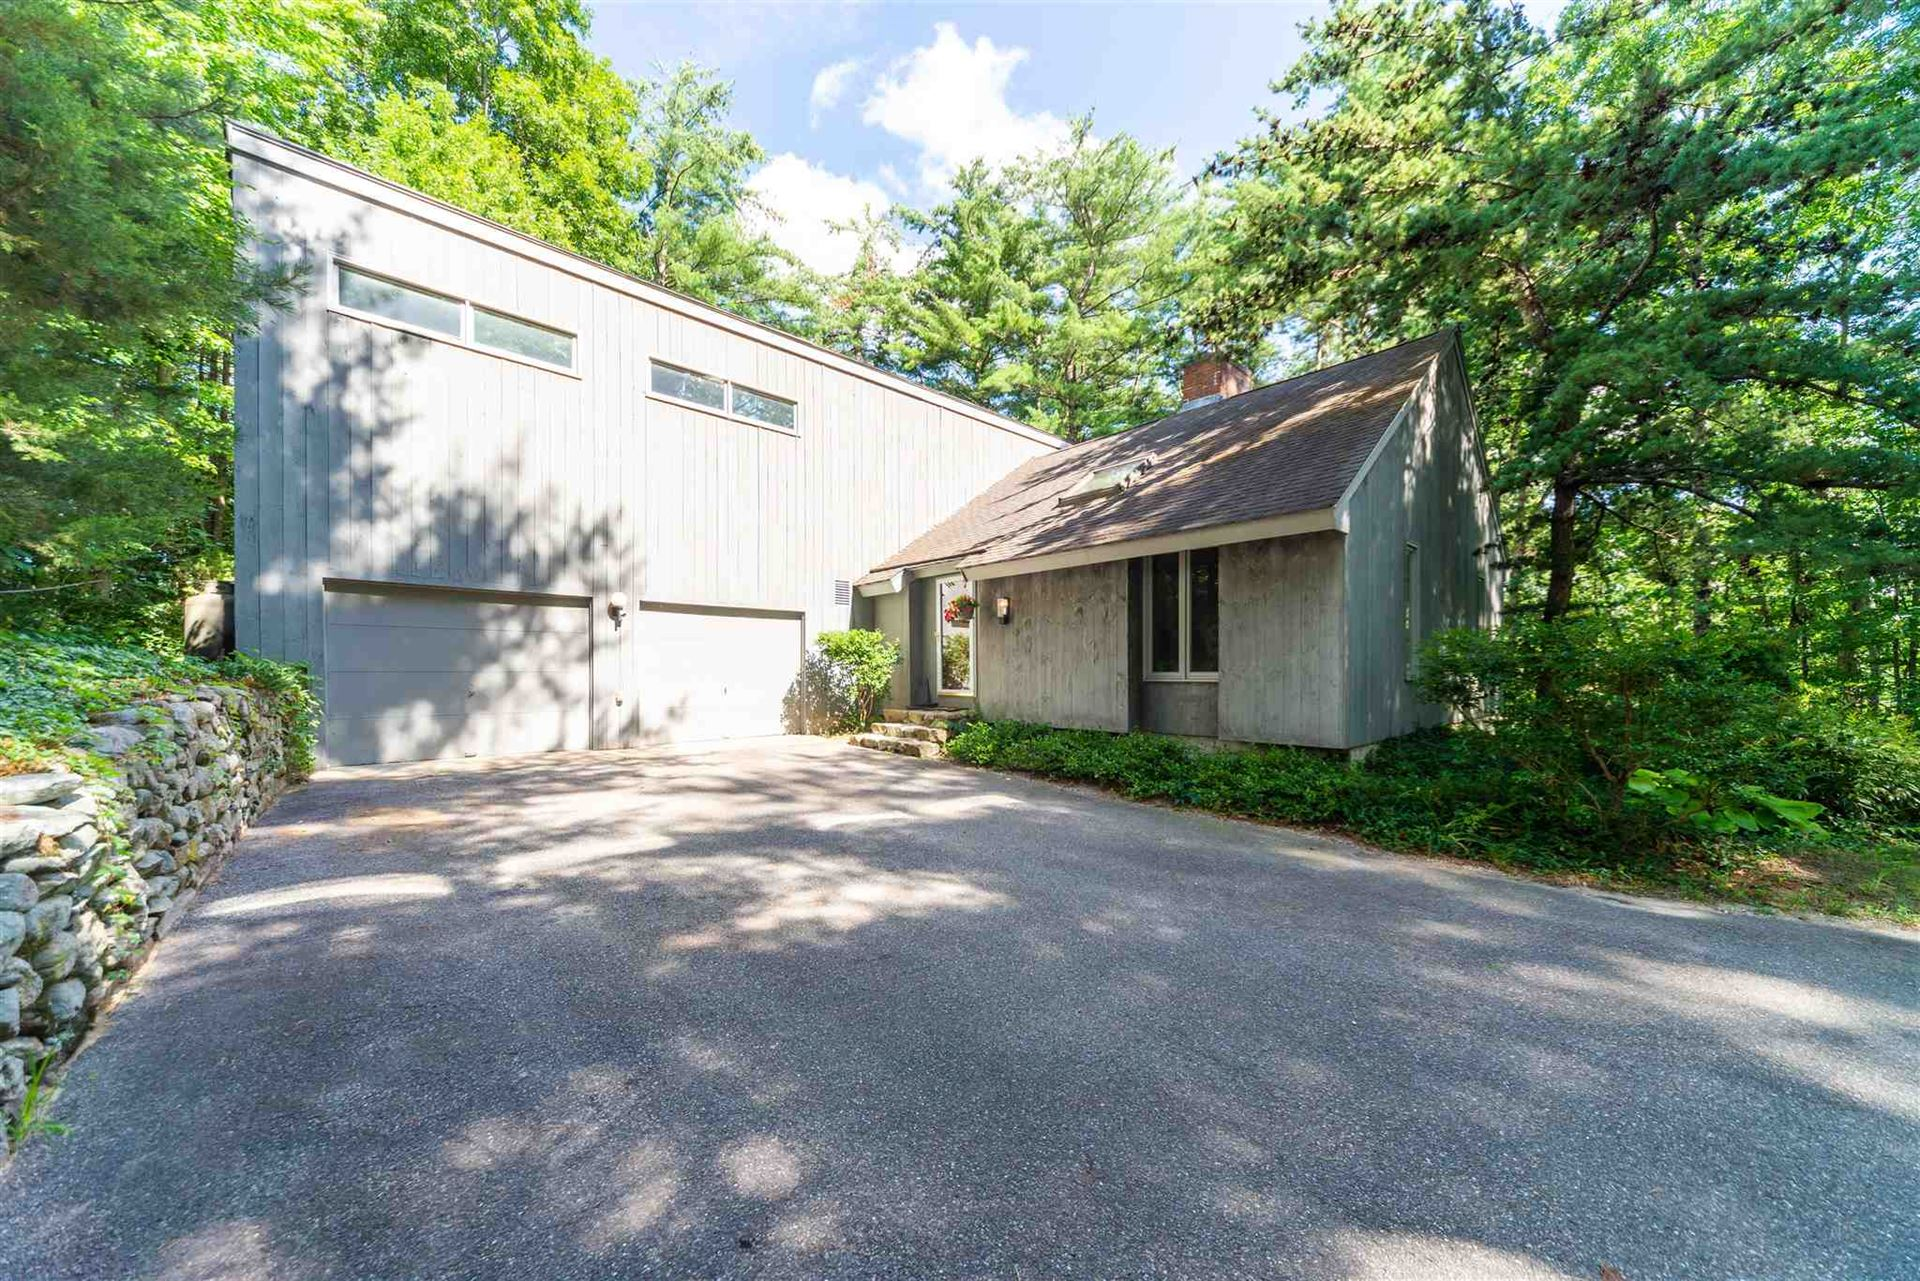 3 Orchard View Drive, Amherst, NH 03031 - MLS#: 4819754